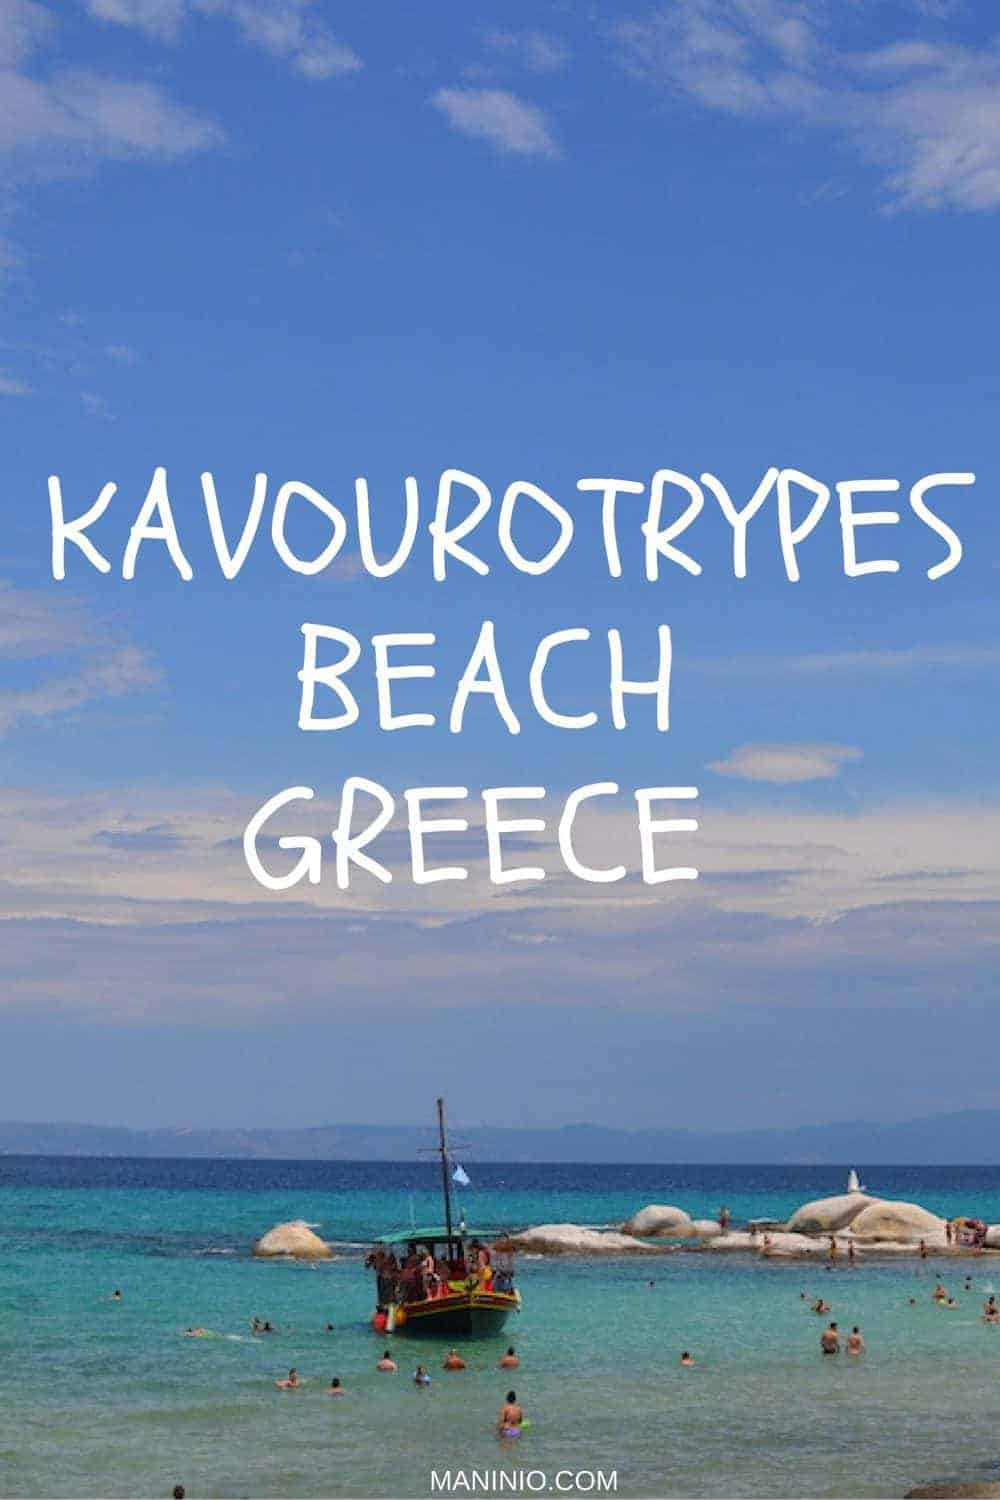 Kavourotripes - orange - beach pinterest